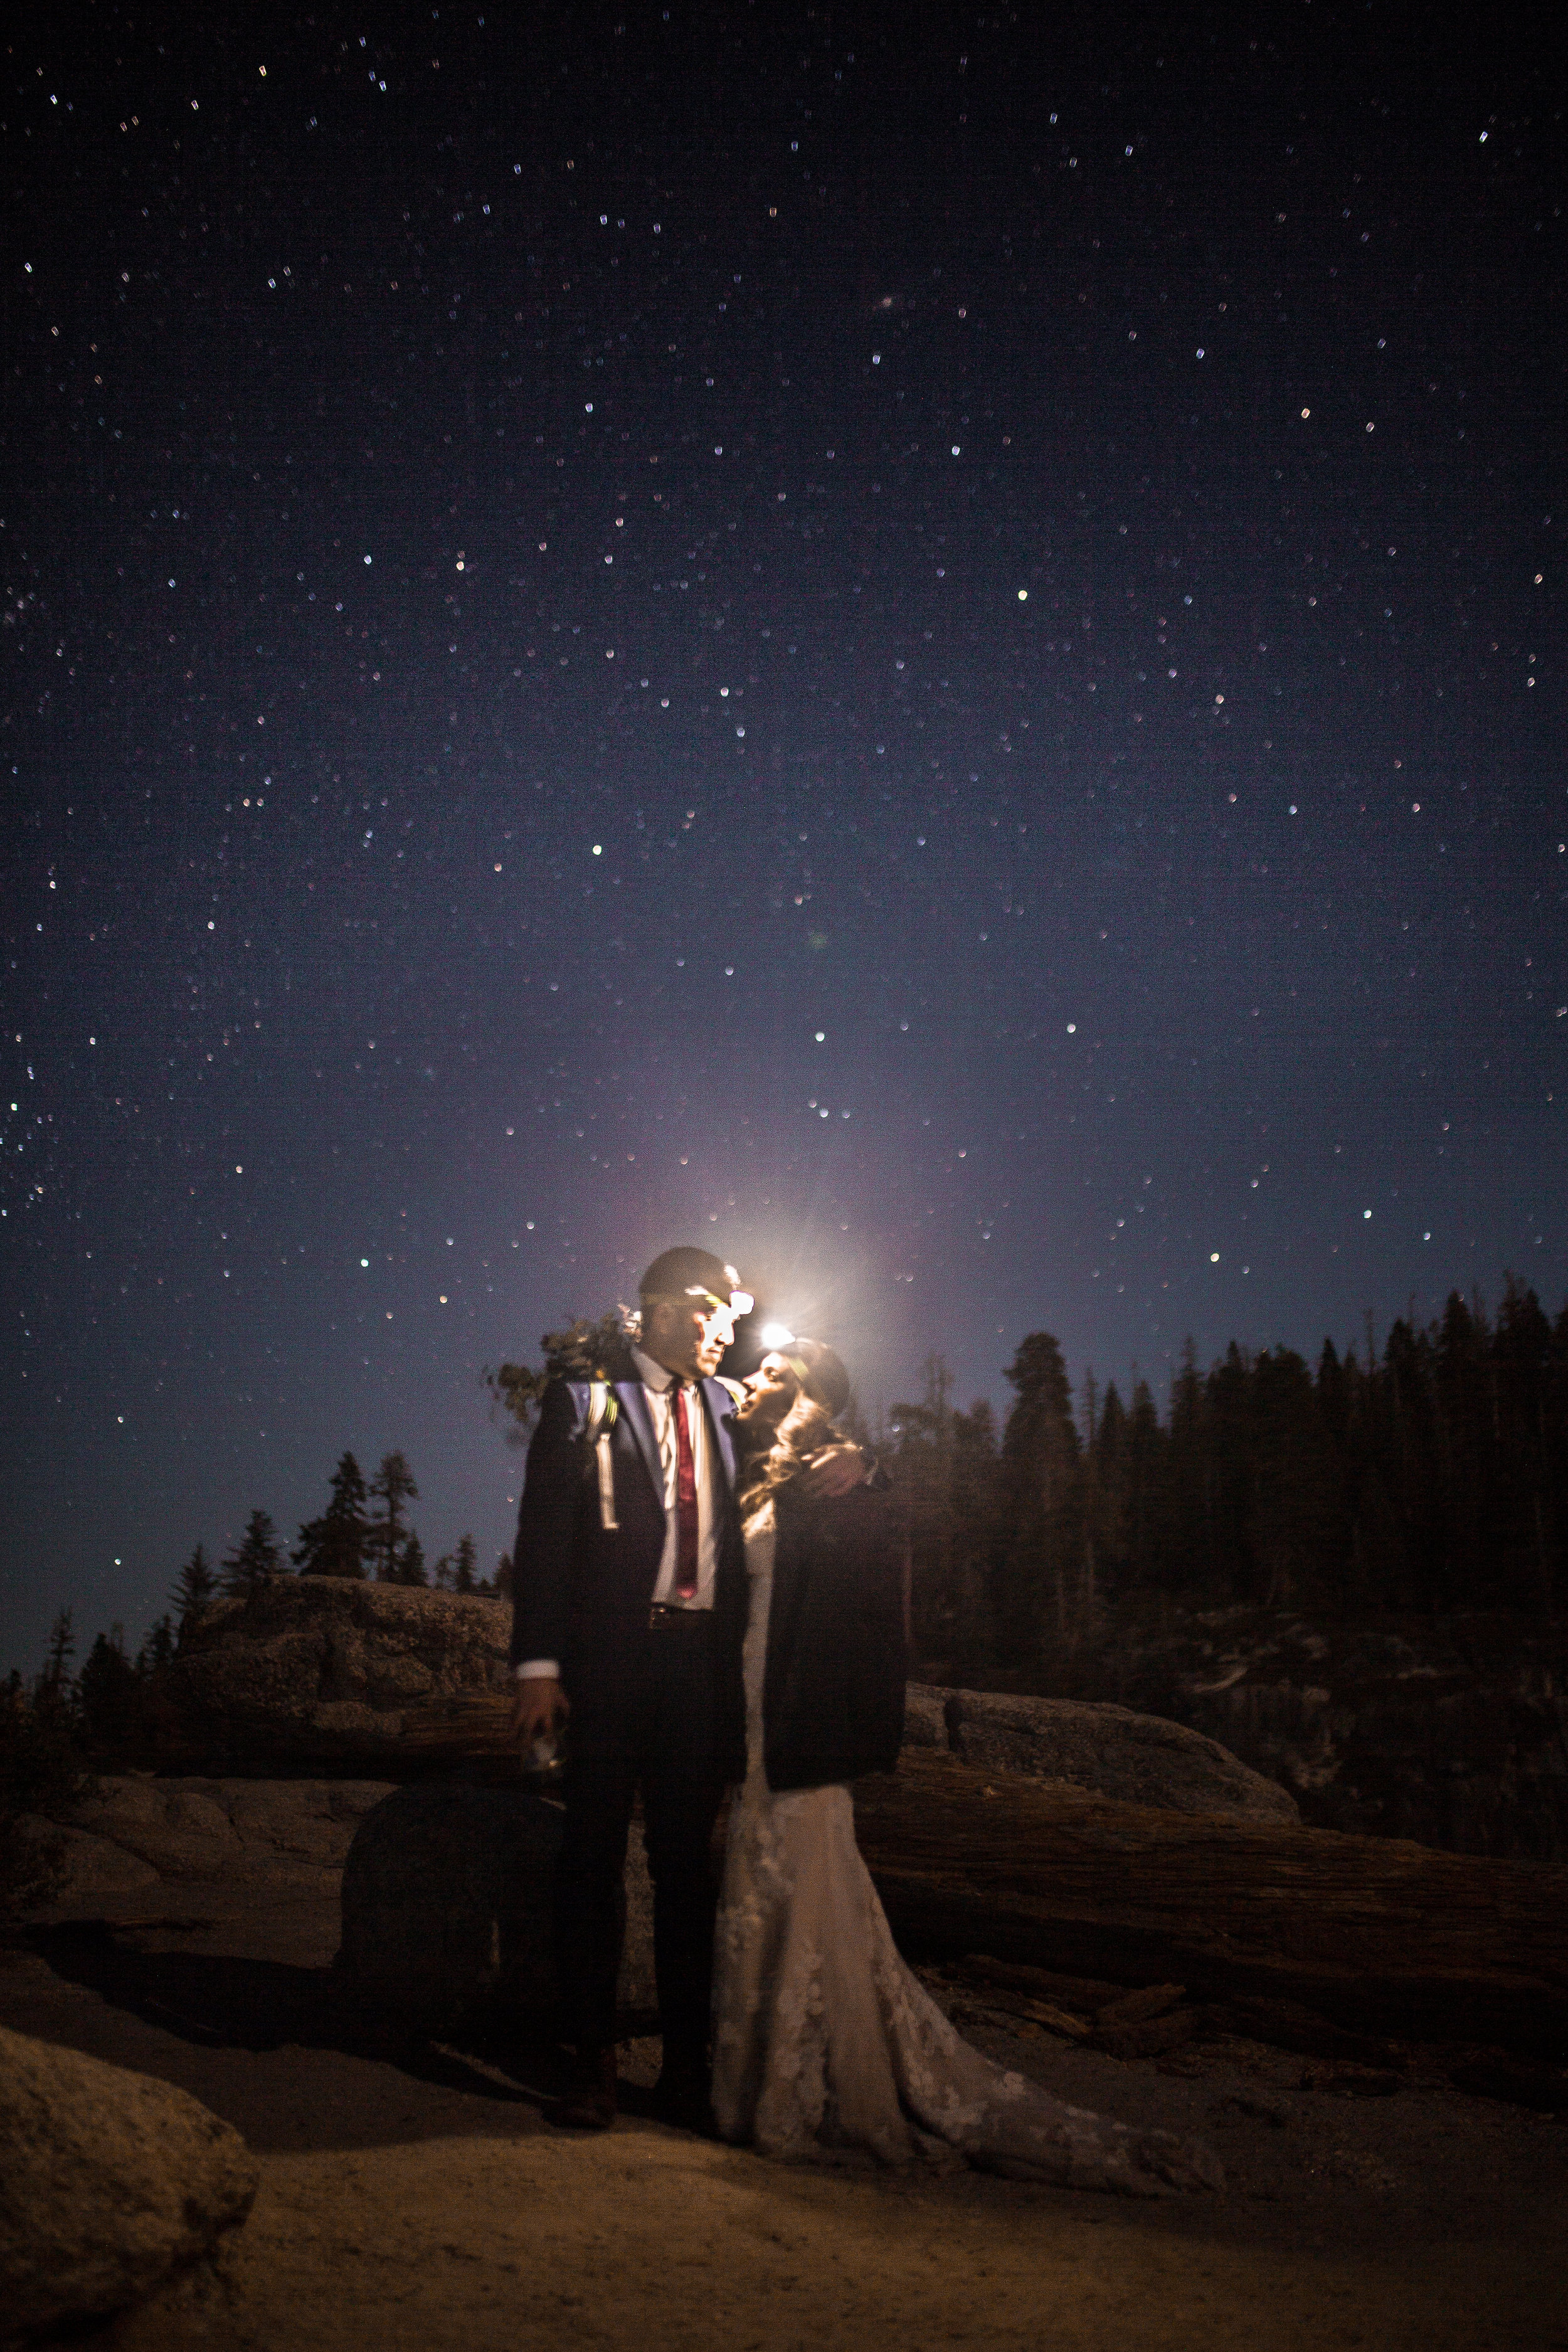 nicole-daacke-photography-intimate-elopement-wedding-yosemite-national-park-california-taft-point-sunset-photos-yosemite-valley-tunnel-view-first-look-sunrise-golden-granite-hiking-adventure-wedding-adventurous-elopement-photographer-125.jpg